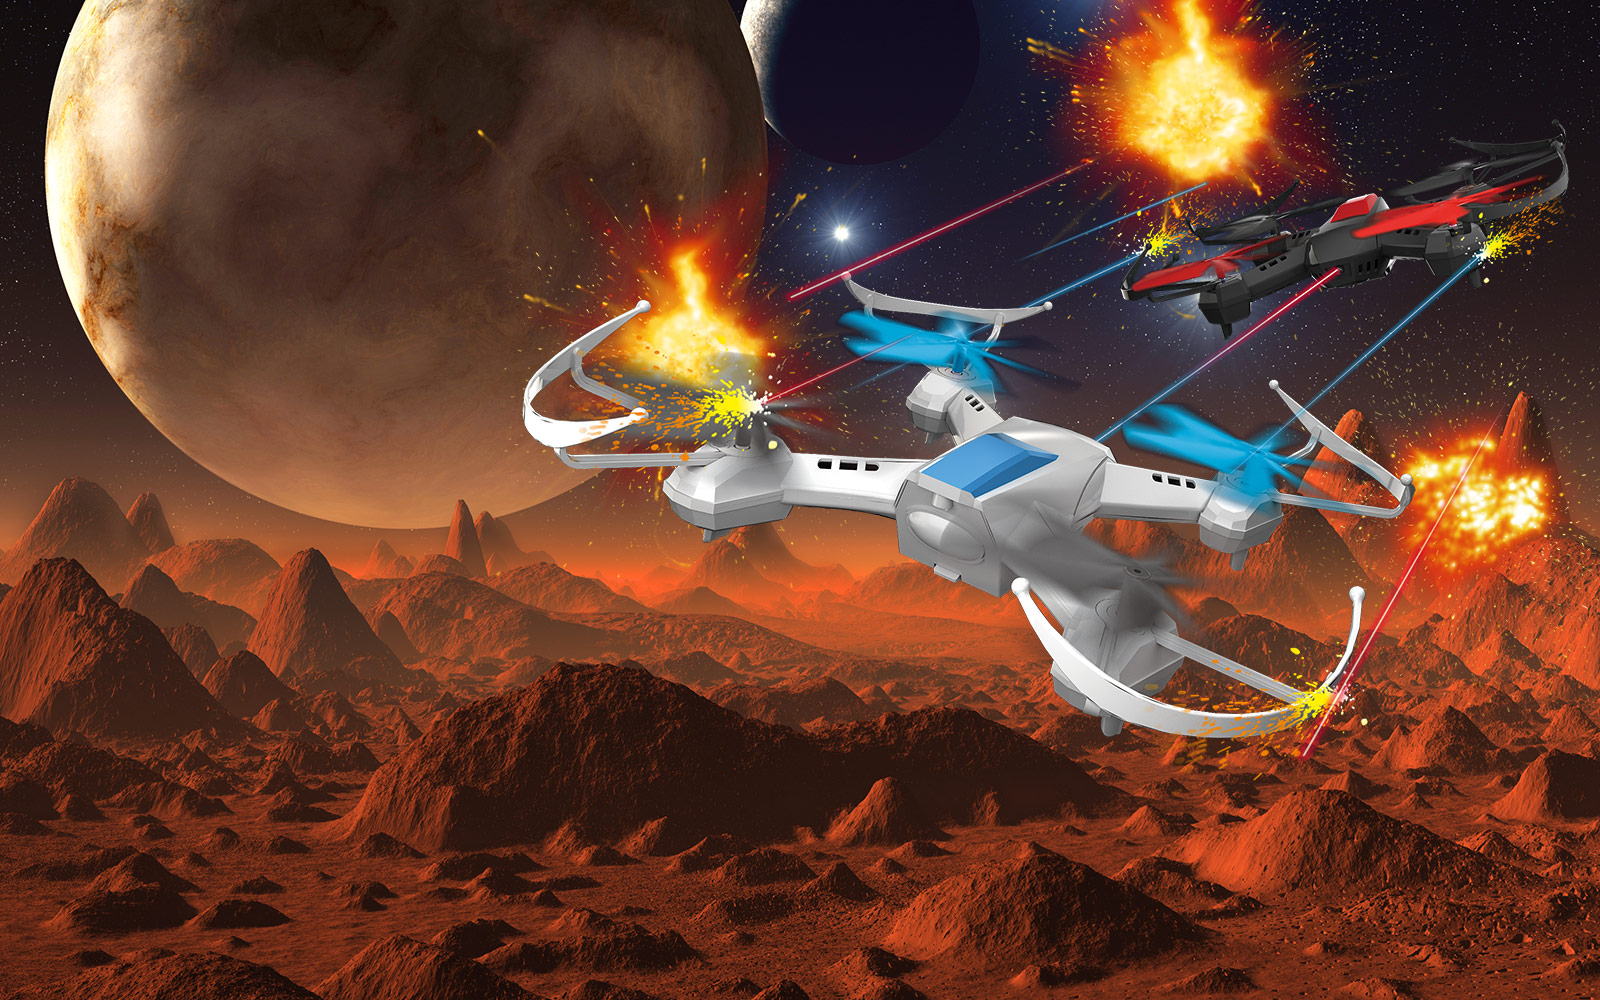 Illustrated depiction of DGL Toys' Quadrone products battling each other over an alien landscape